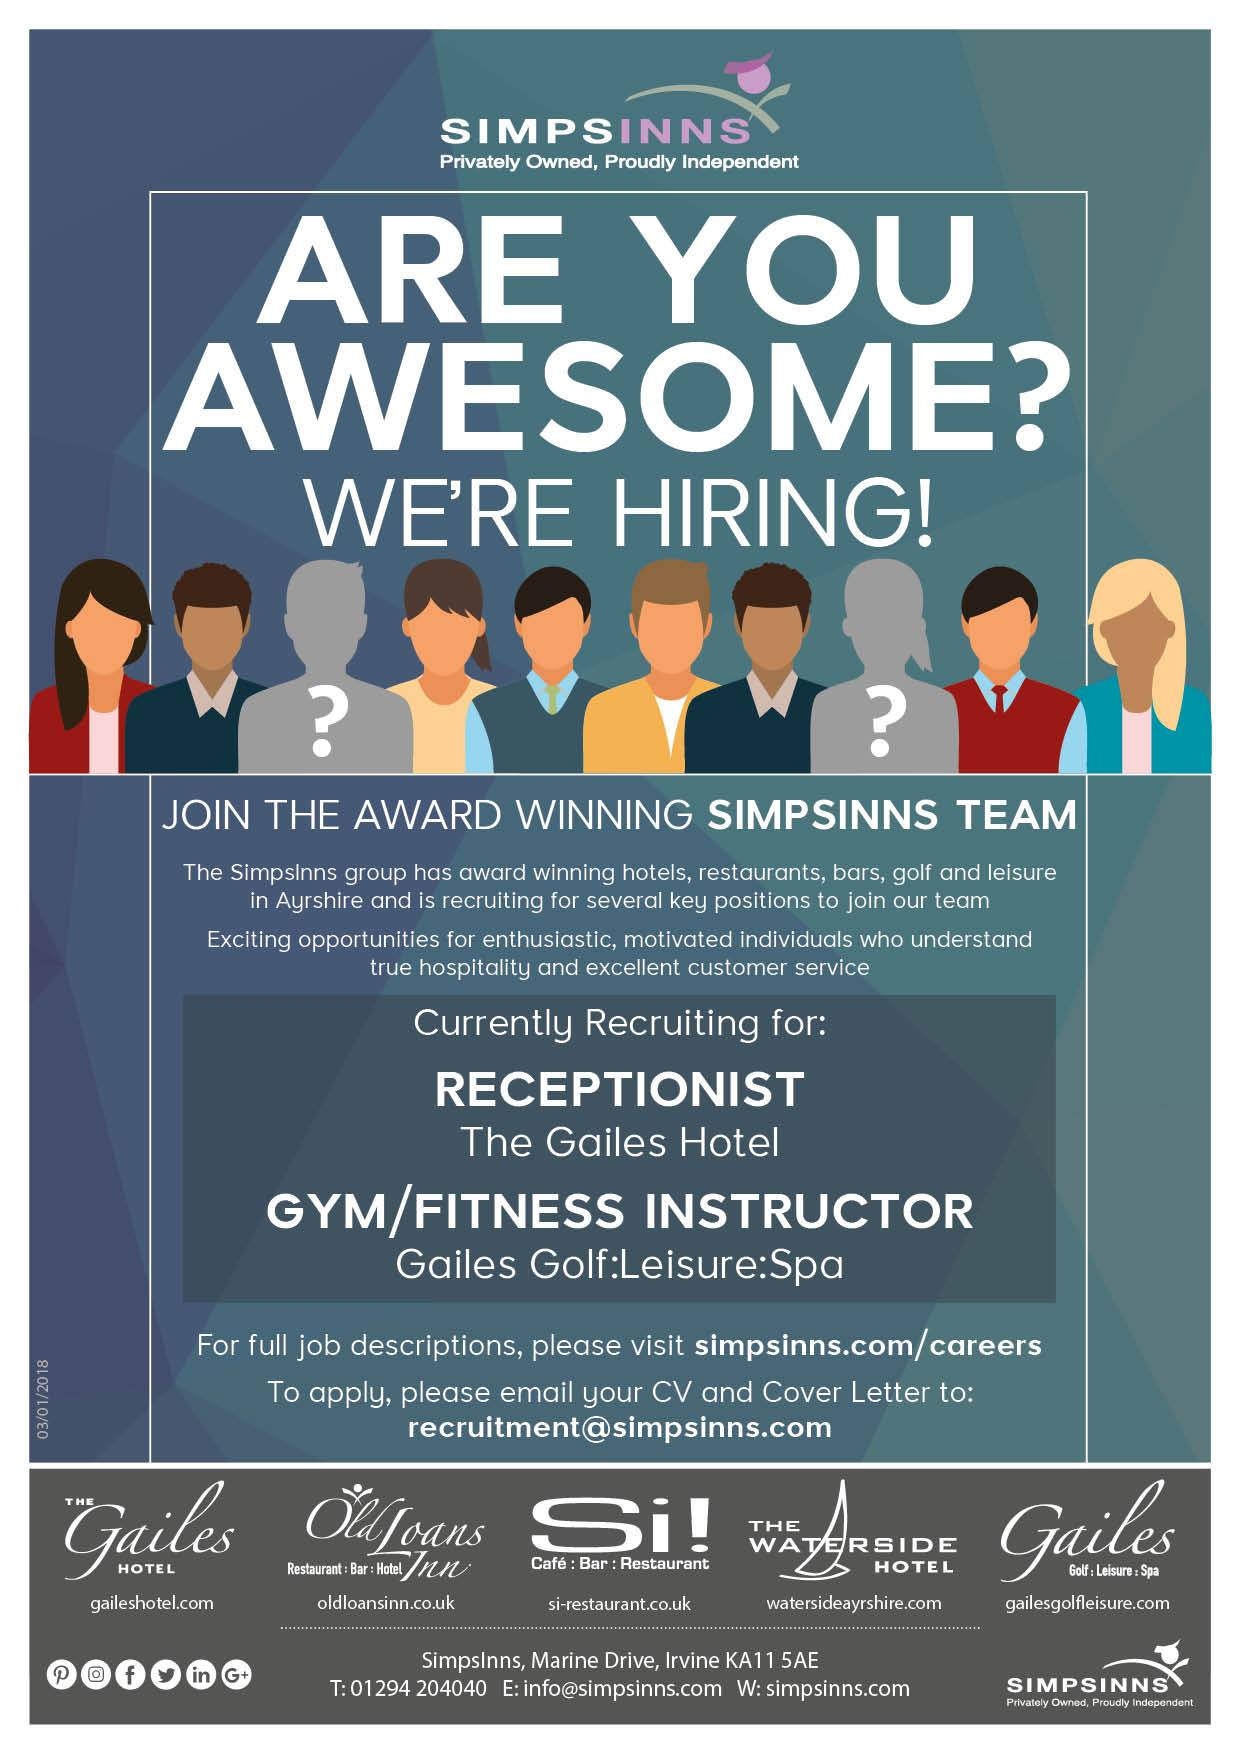 simpsinns on twitter   u0026quot are you awesome  we u0026 39 re hiring  see